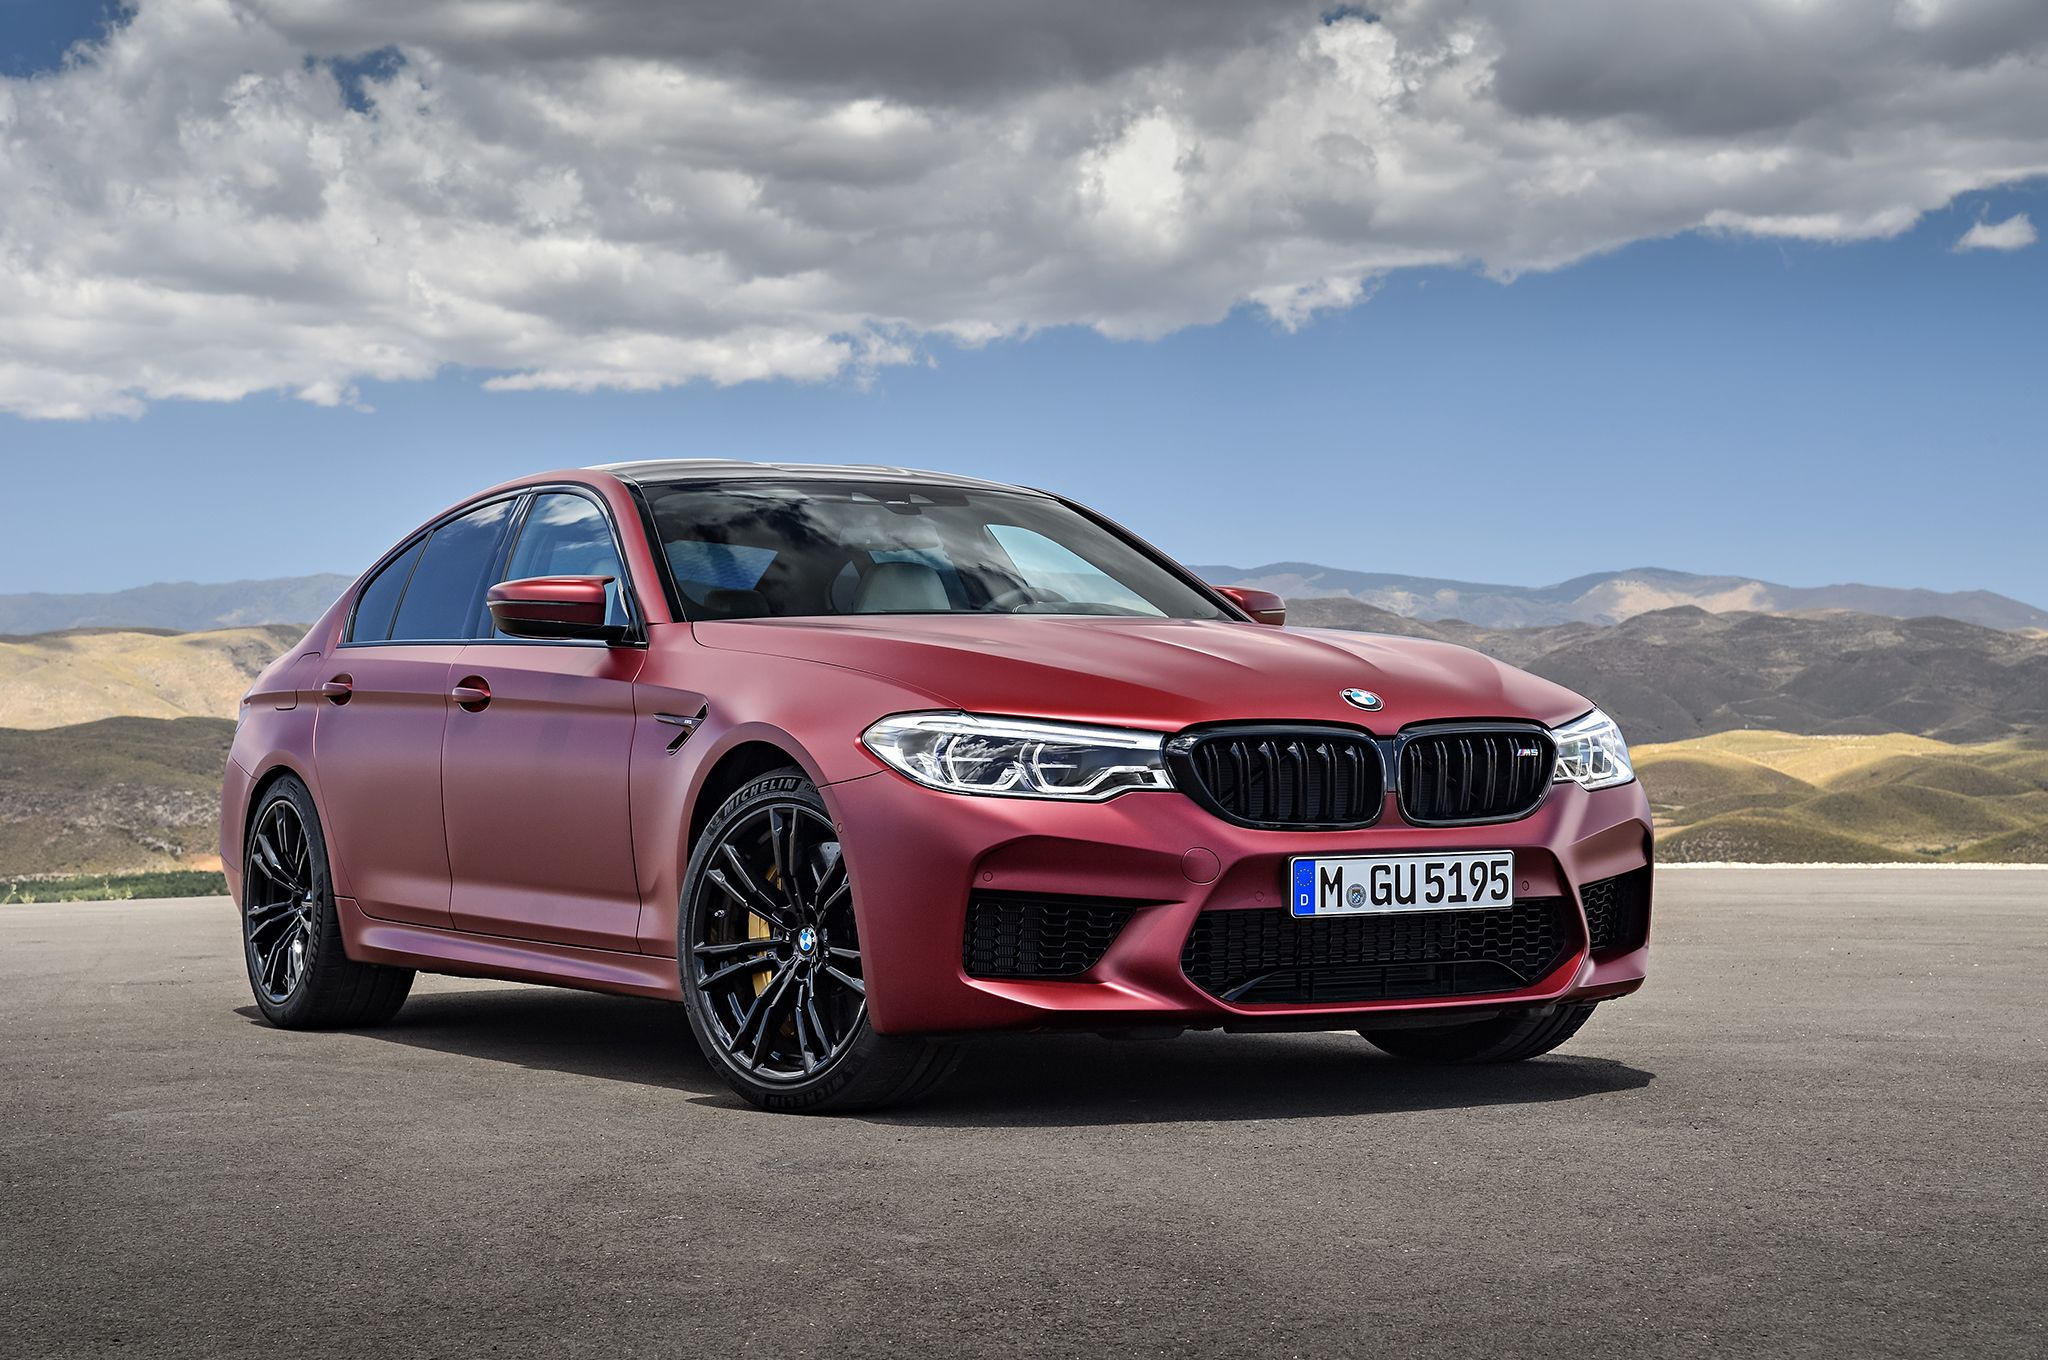 2018 Bmw M5 Arrives Packing A 600 Hp Twin Turbo V 8 Bmw